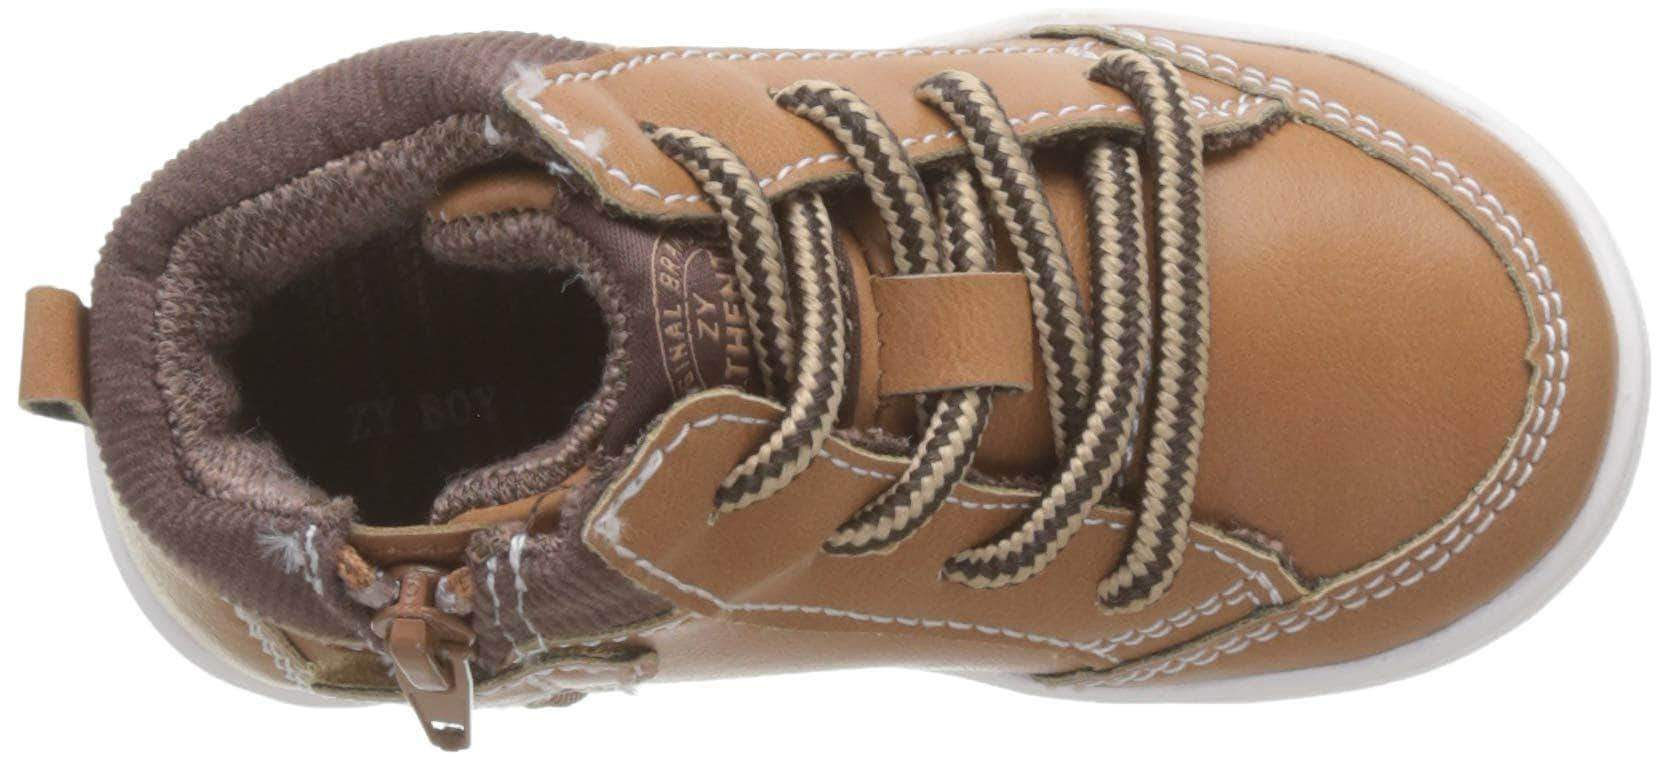 Amazon Zippy Zapatillas Bota, Botas para Bebés, Beige (Camel 82), 21 EU